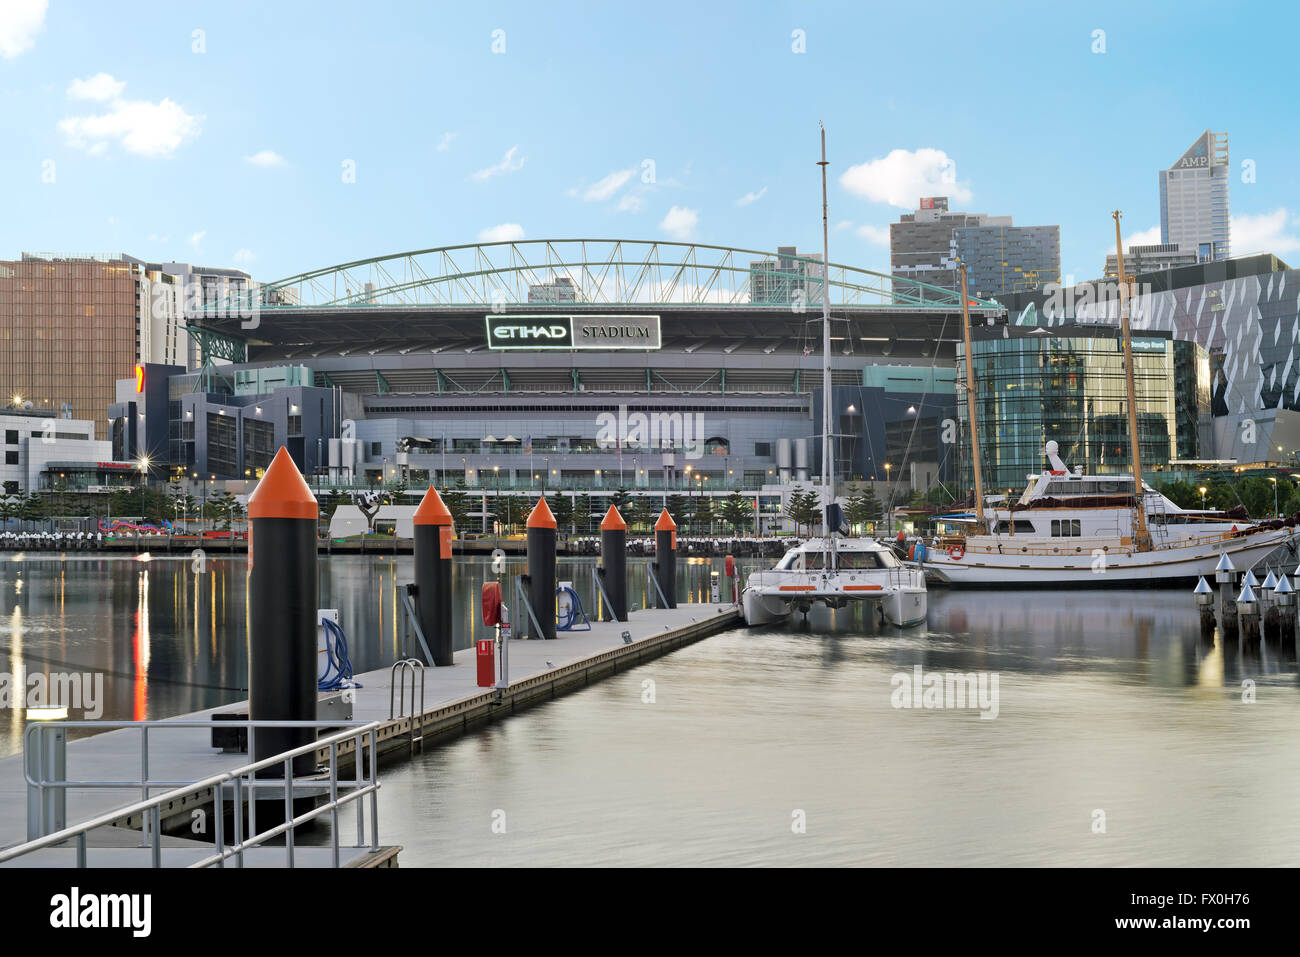 A photo of Etihad stadium in Docklands, taken early morning. - Stock Image